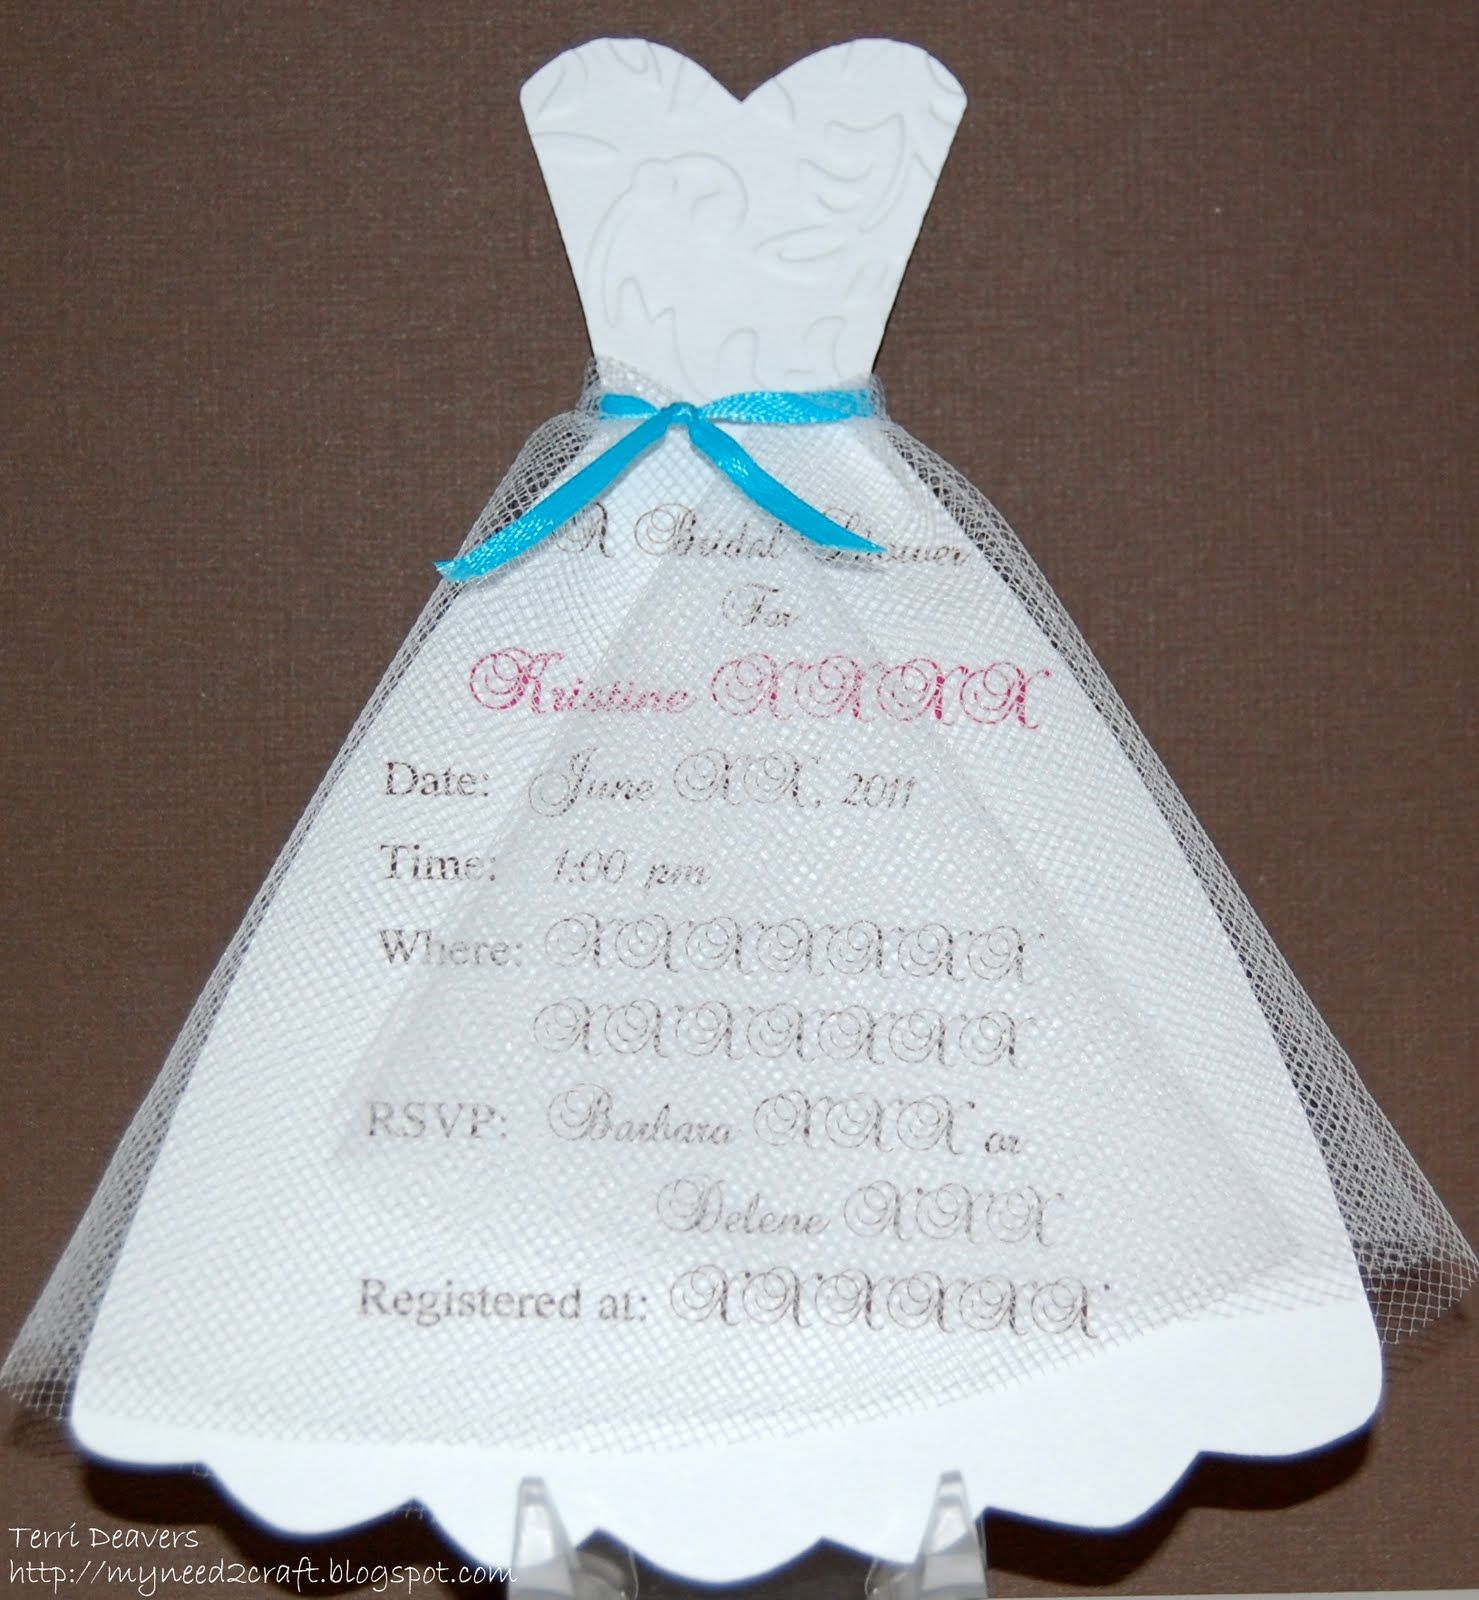 10 Most Recommended Diy Bridal Shower Invitations Ideas dress template myneed2craft bridal shower invitations cards